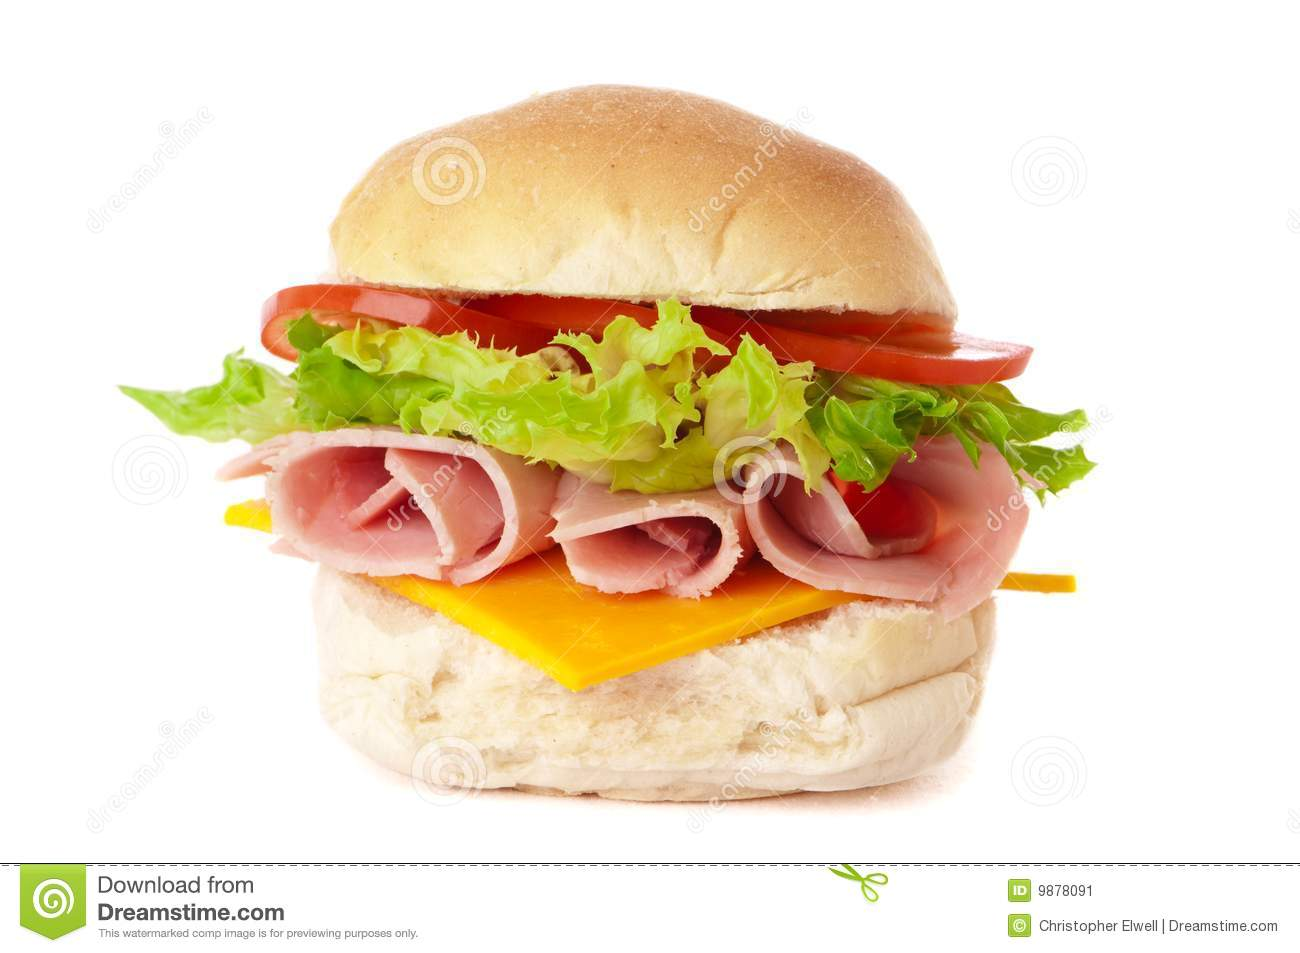 Filled bread roll with ham and cheese salad on white background.